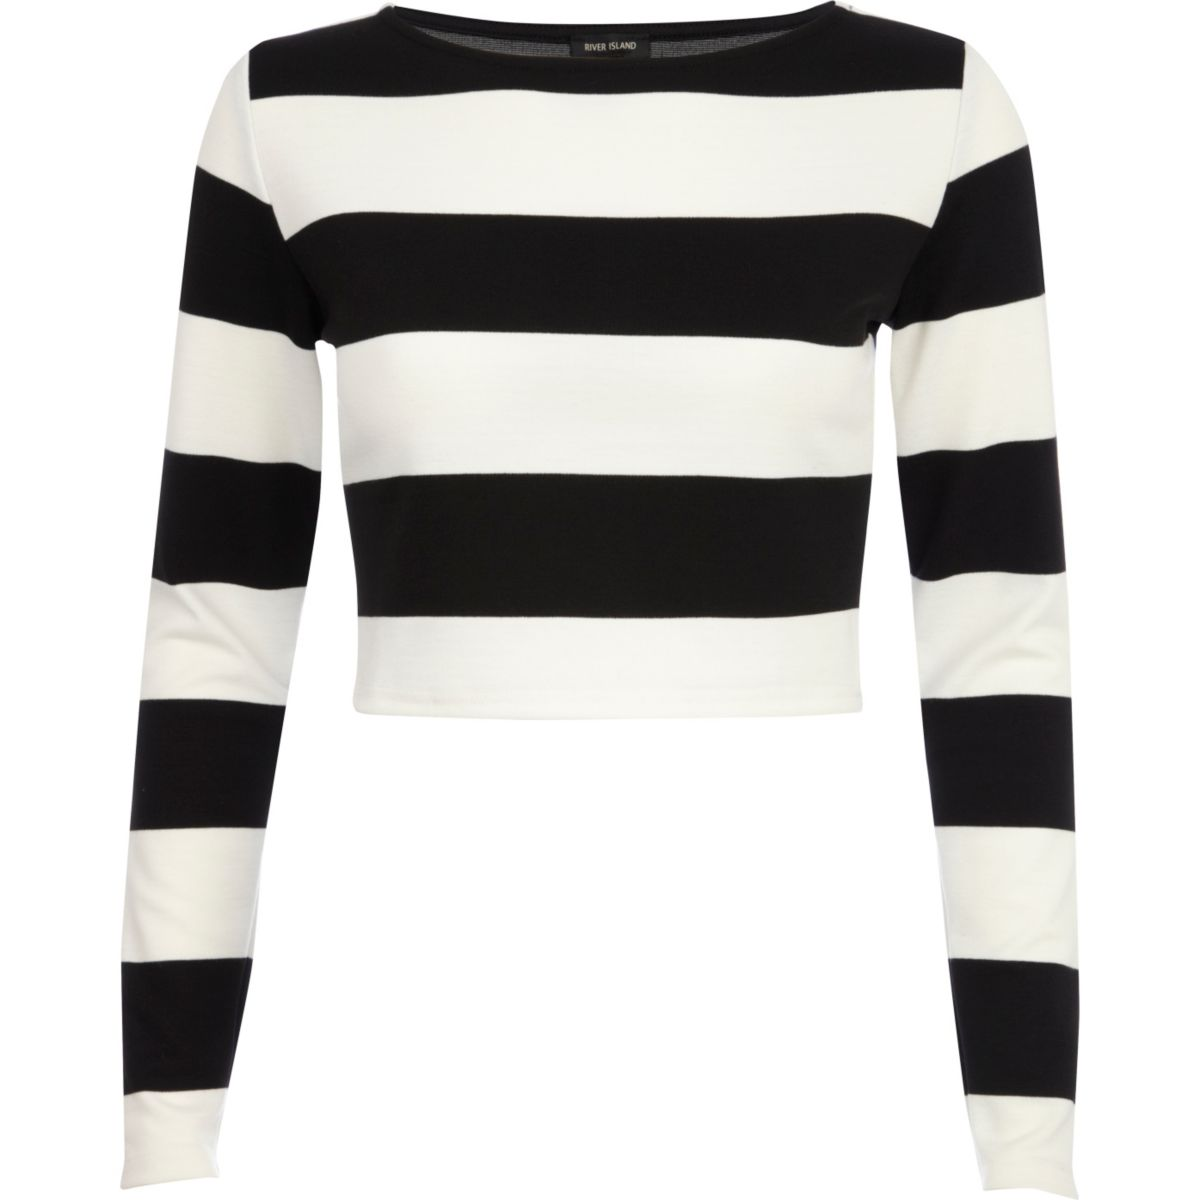 Petite Black Striped Frill Sleeve Detail Crop Top. Nail the monochrome trend this festival season with this crop top. Featuring a black and white striped fabric with frill detailing, what's not to love? Complete this look with denim shorts, lace up boots and a baker boy hat.